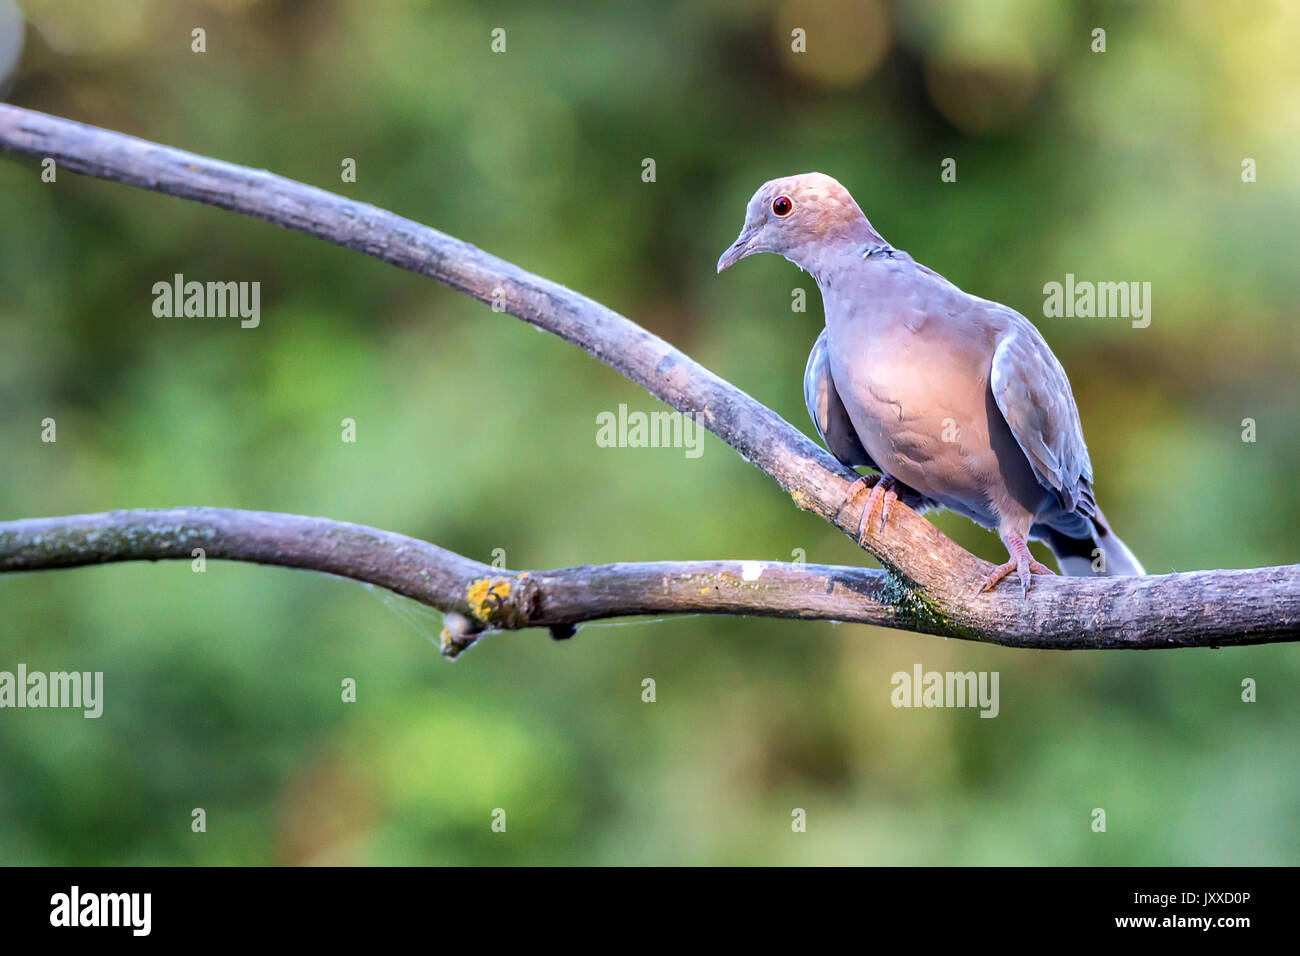 Collared dove or Streptopelia decaocto on branch - Stock Image